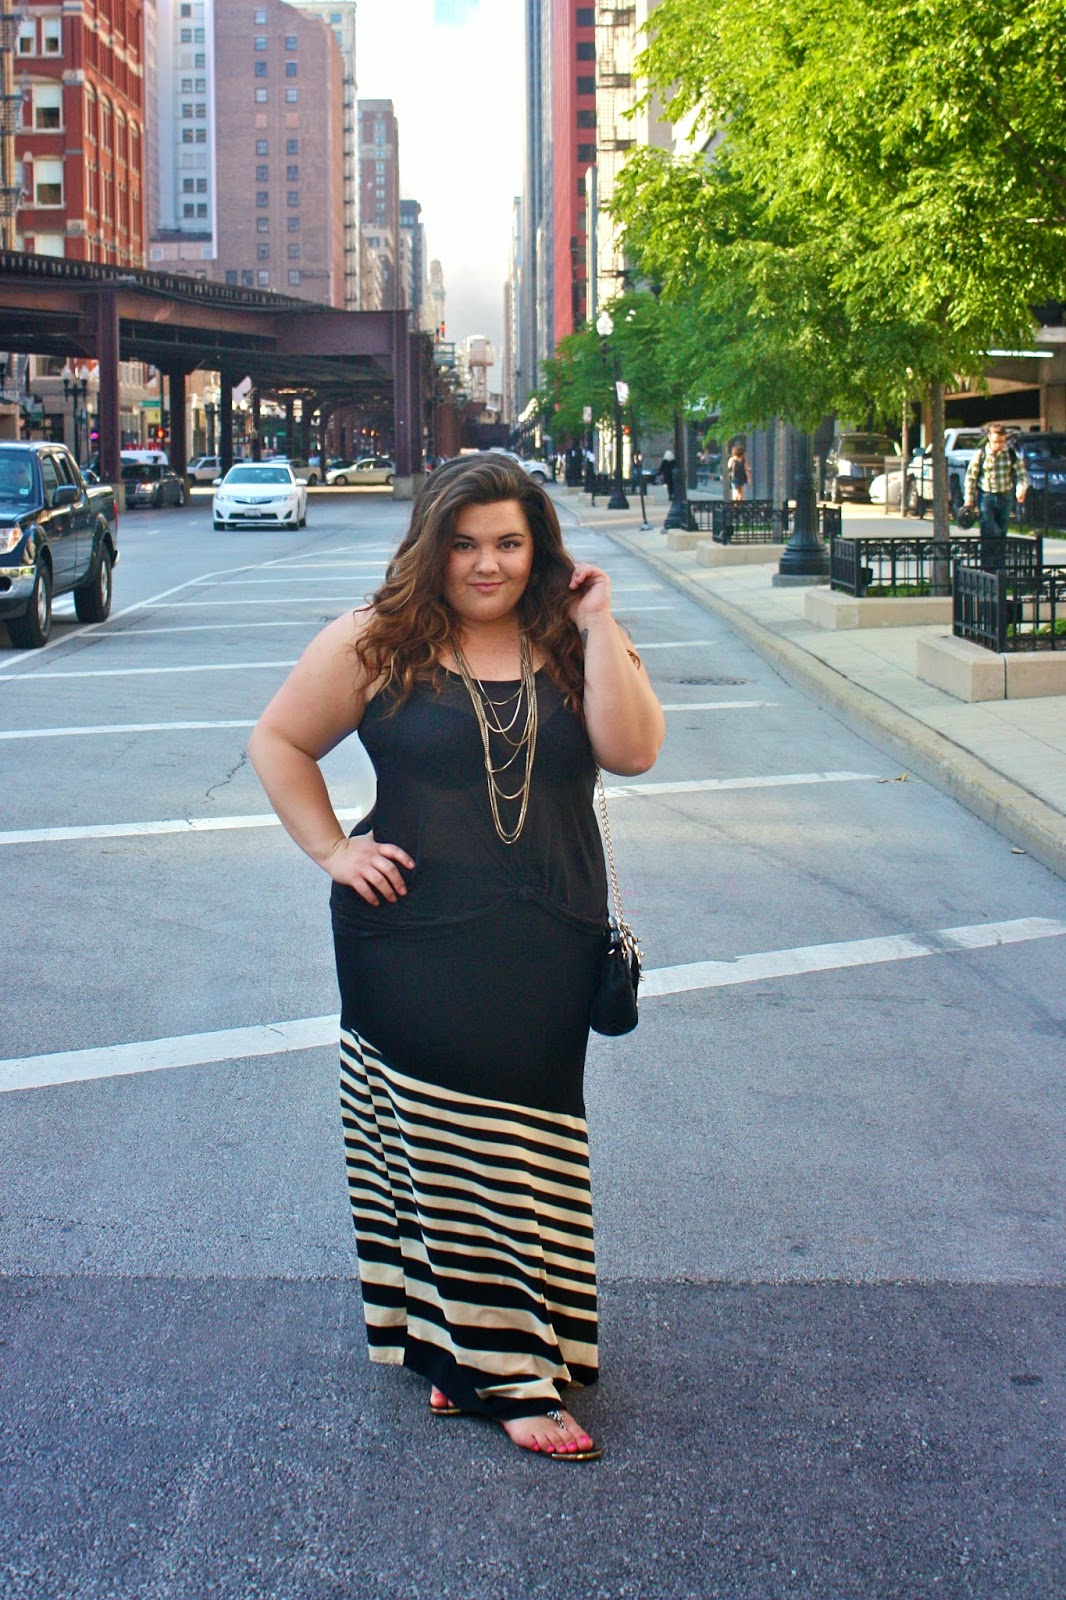 stylzoo, plus size fashion blogger, plus size fashion, Forever21, gold chain, see through, maxi skirt, stripes, summer fashion, natalie craig, natalie in the city, chicago, black ensemble, all black everything, plus size retailer, ootd, outfit of the day, spikes, clutch, H&M, curly hair, ombre hair